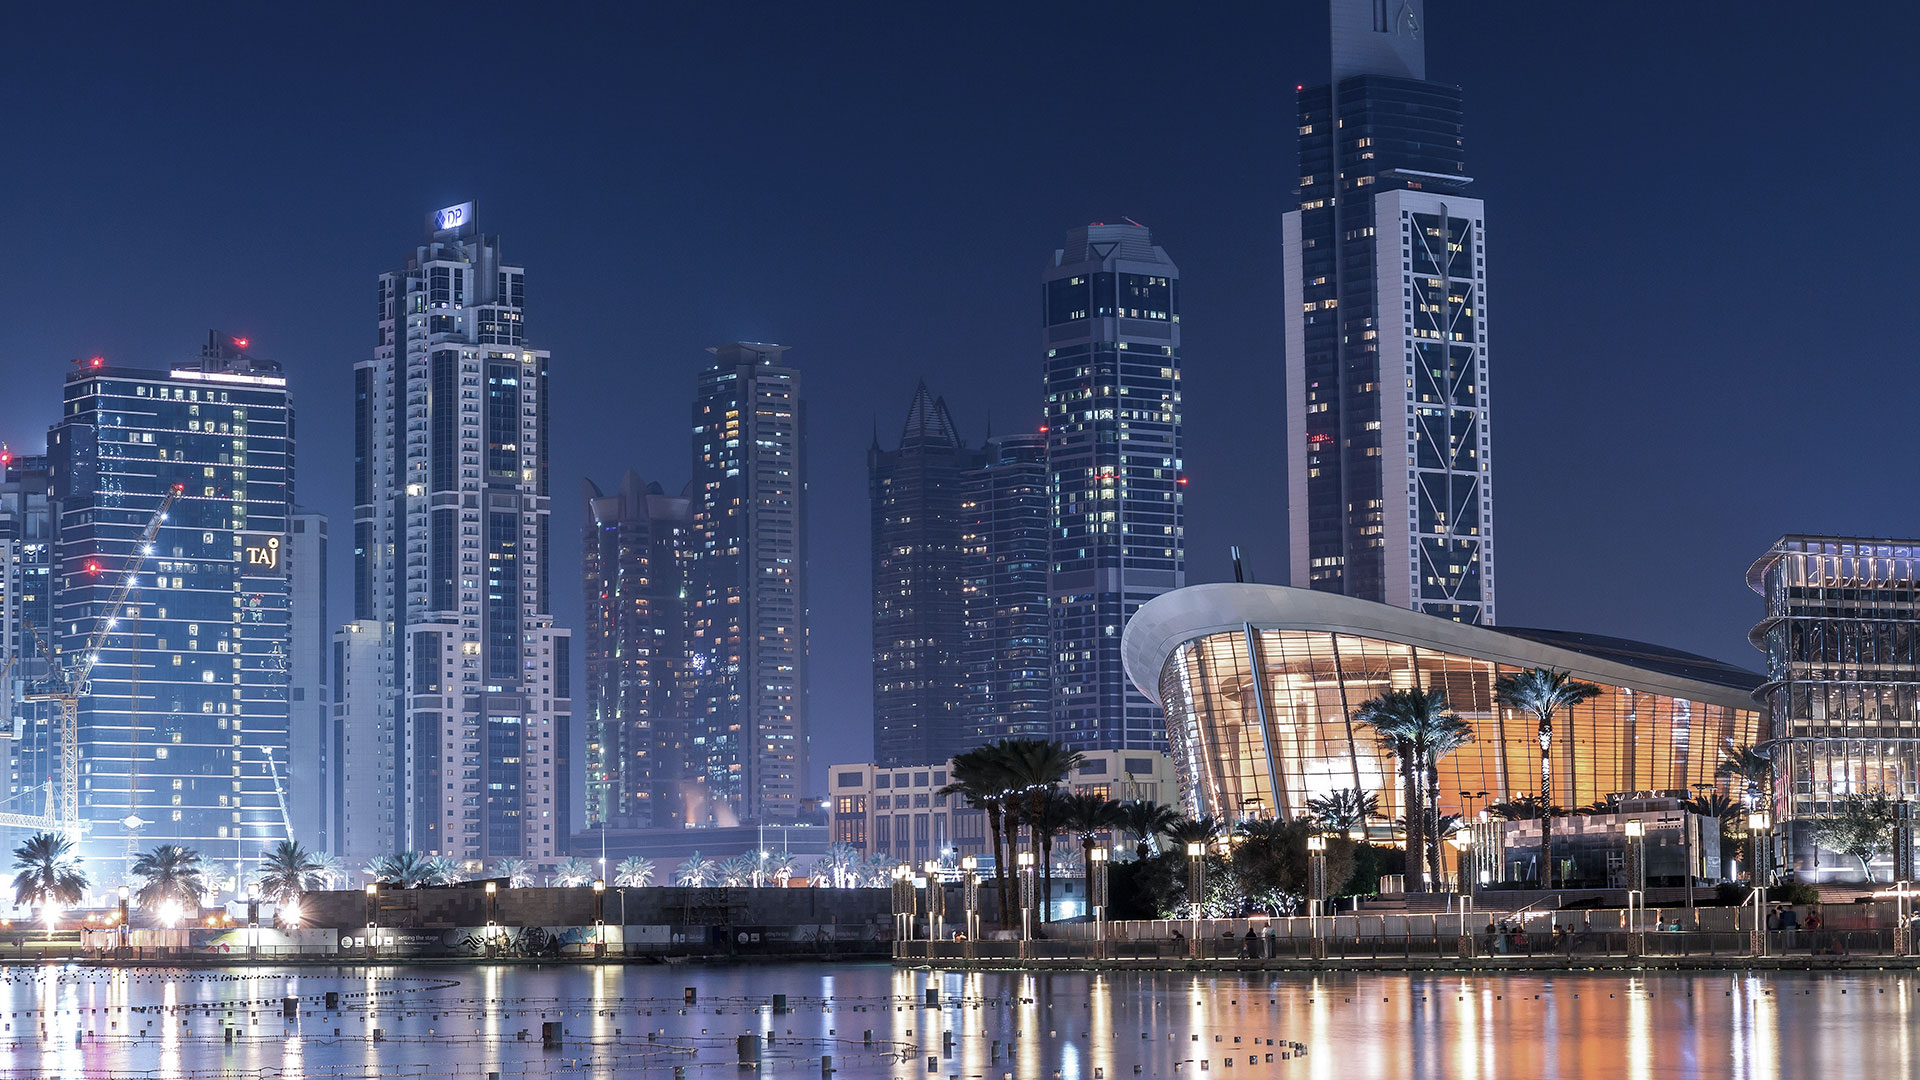 Real Estate Business: How to Start a Real Estate Business in Dubai?